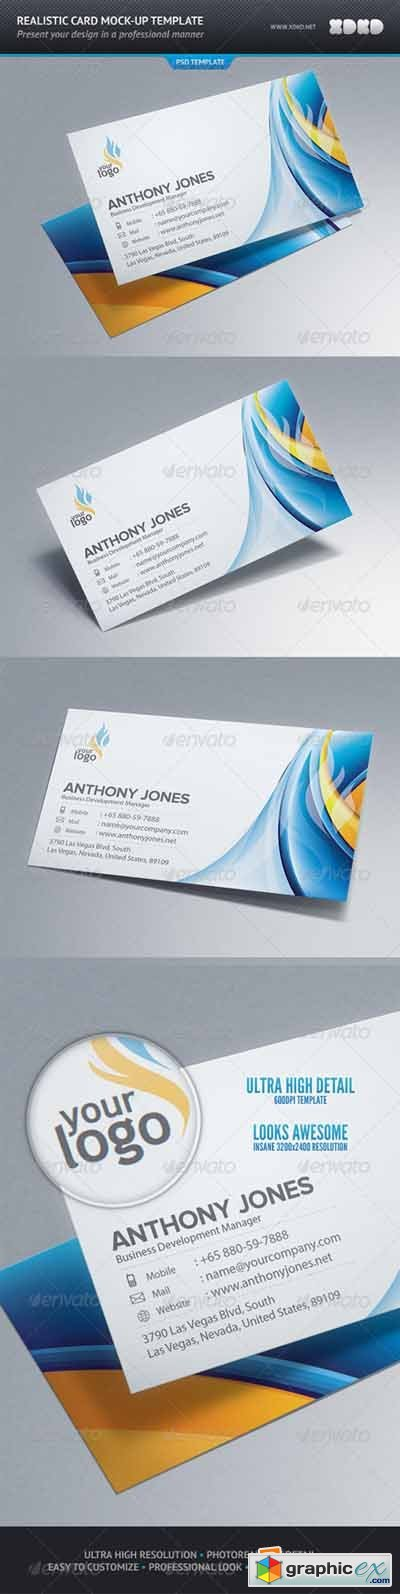 Photo-Realistic Business Card Mock-Up 549753